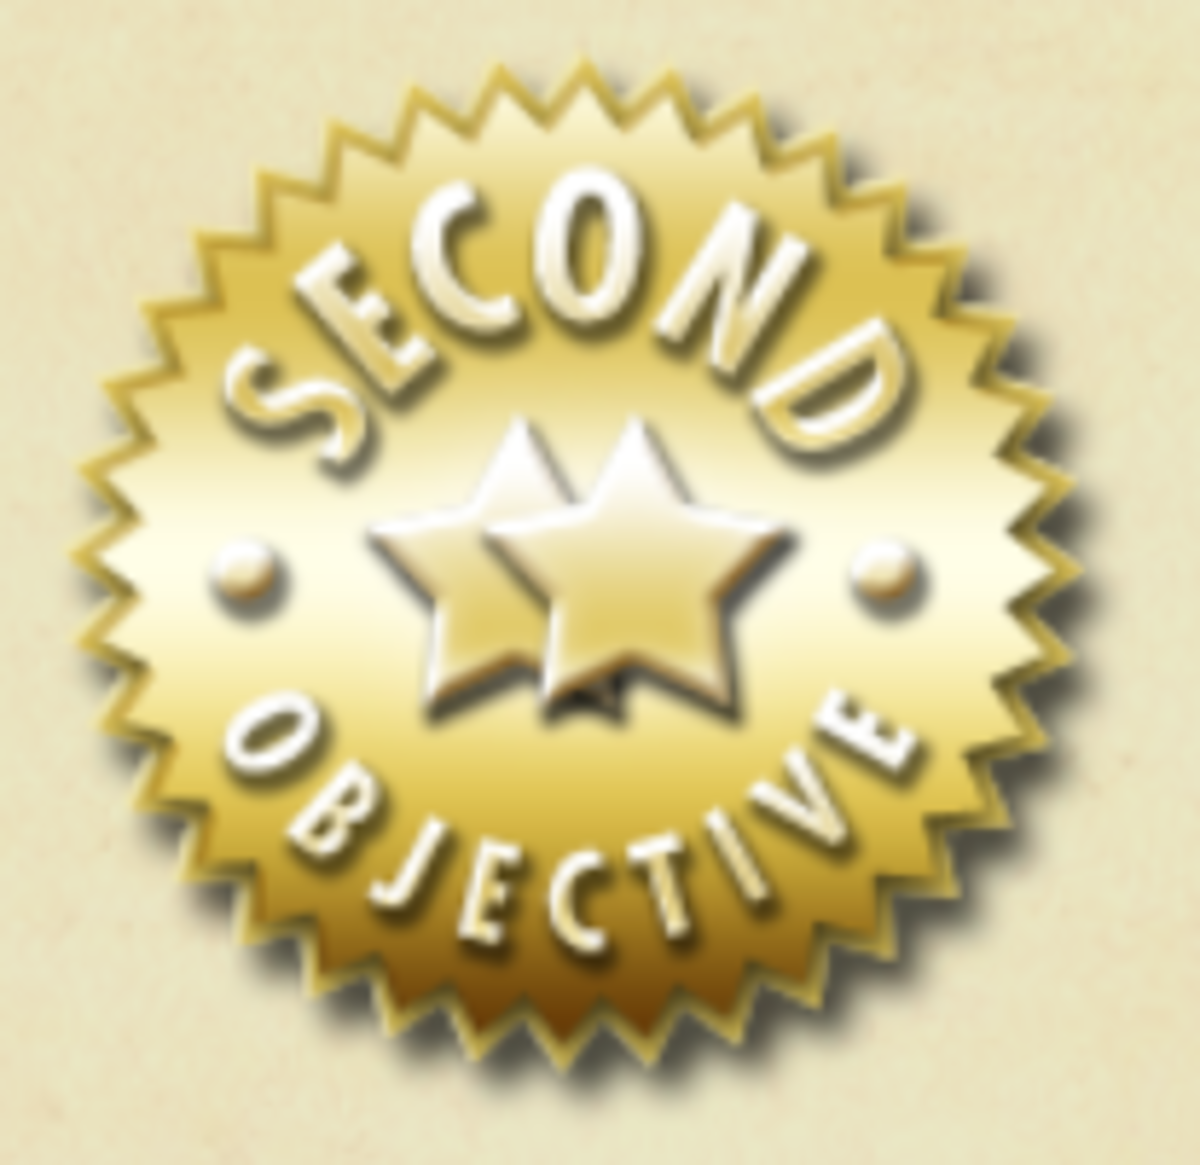 The Gold Second Objective medal.